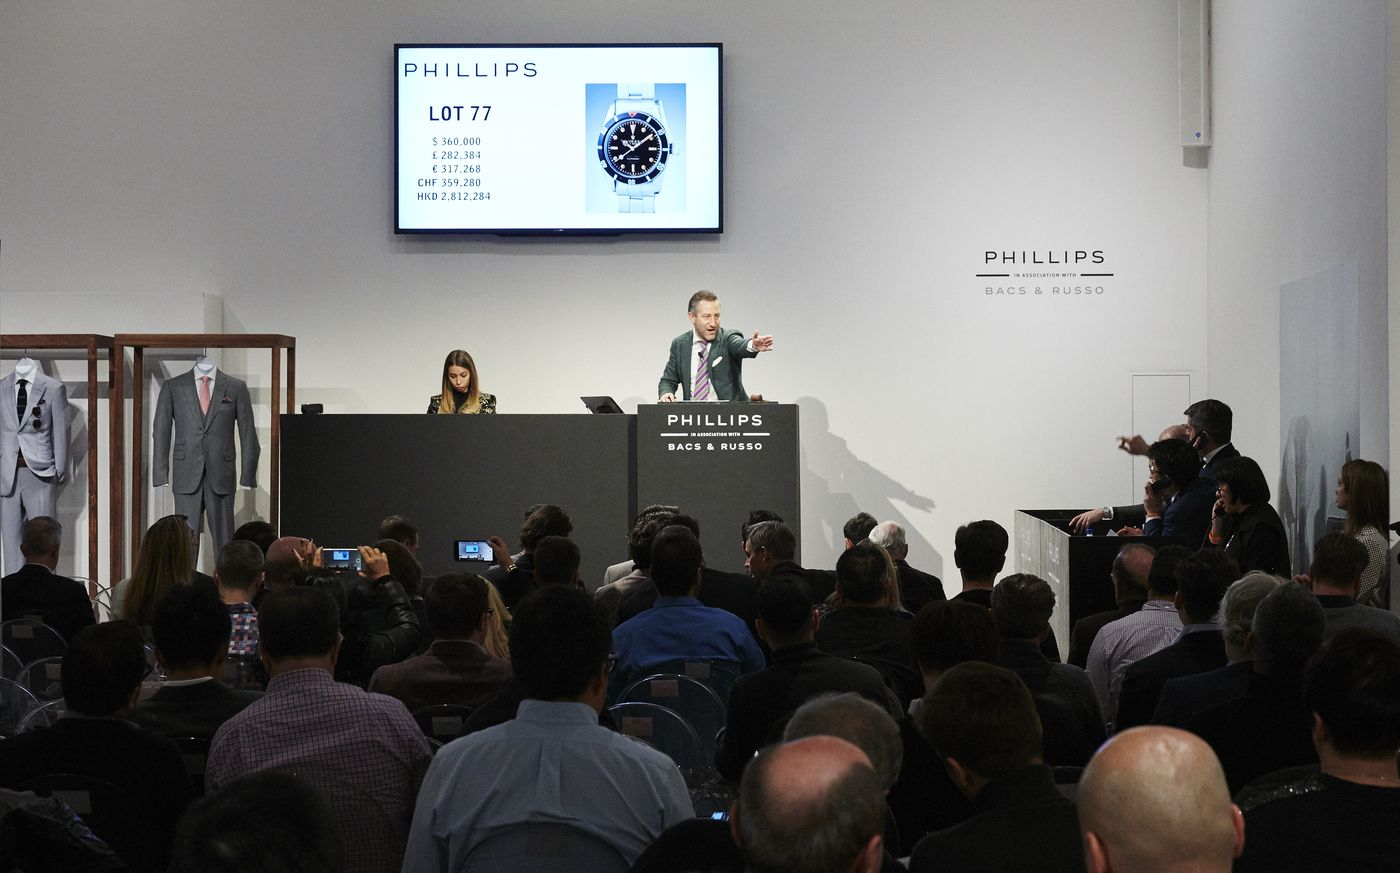 We are pleased to announce that the company's second New York watch auction has achieved $11,523,500 / CHF11,500,453 / €10,155,661, selling 96% by lot and 96% by value.